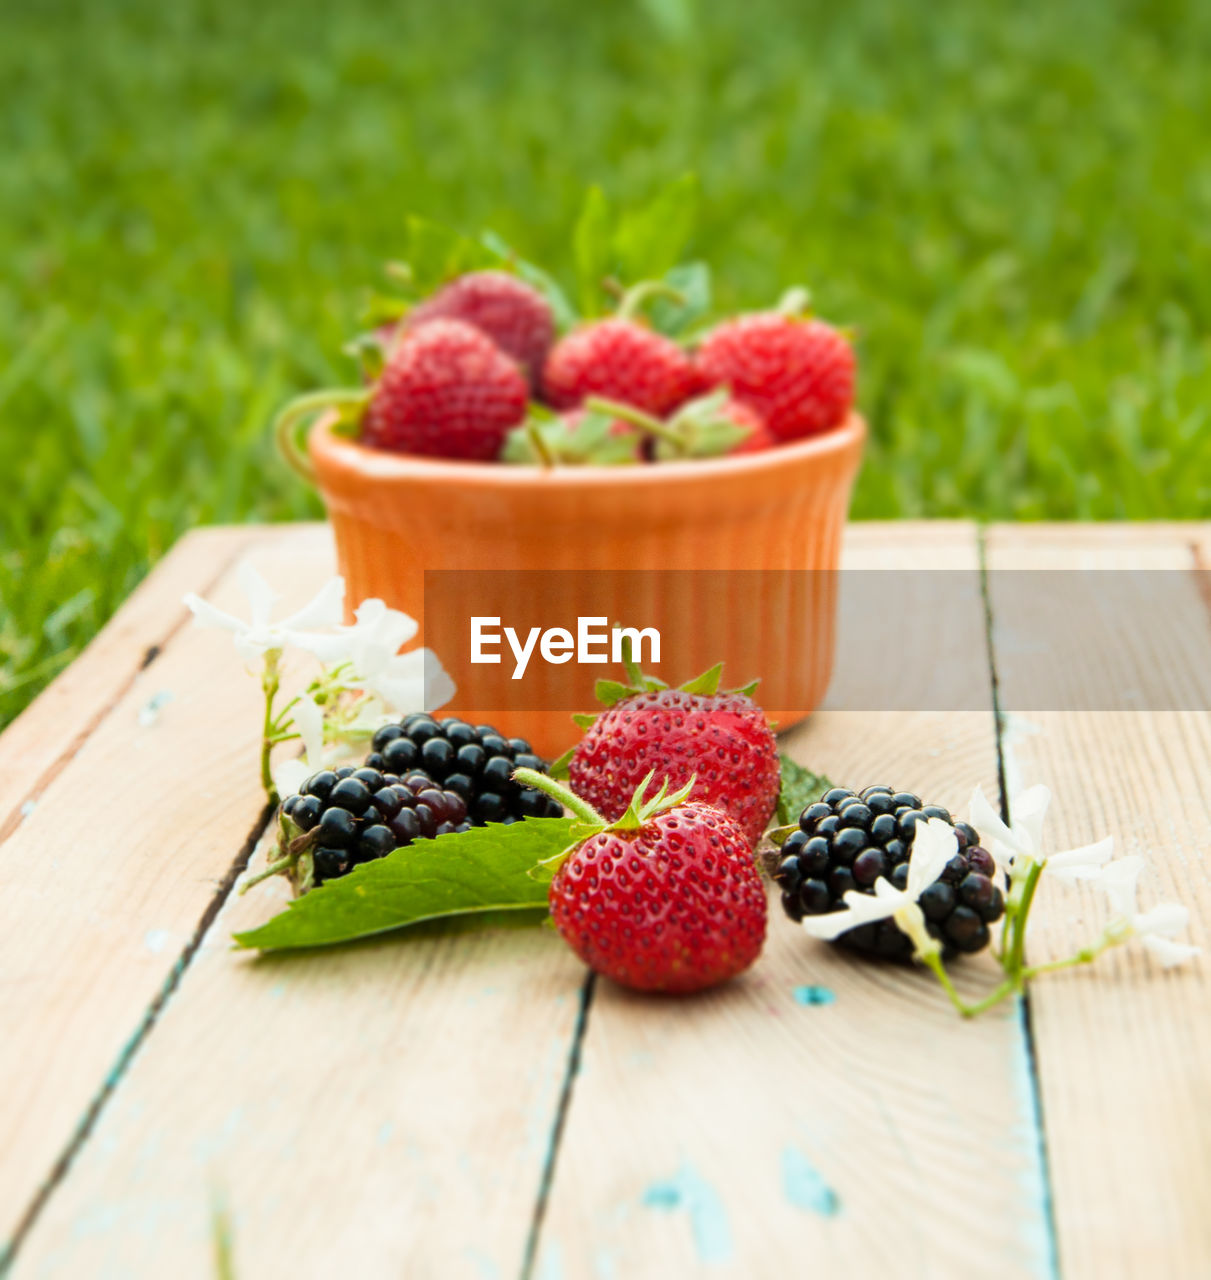 Strawberries and blackberries on wooden table at lawn